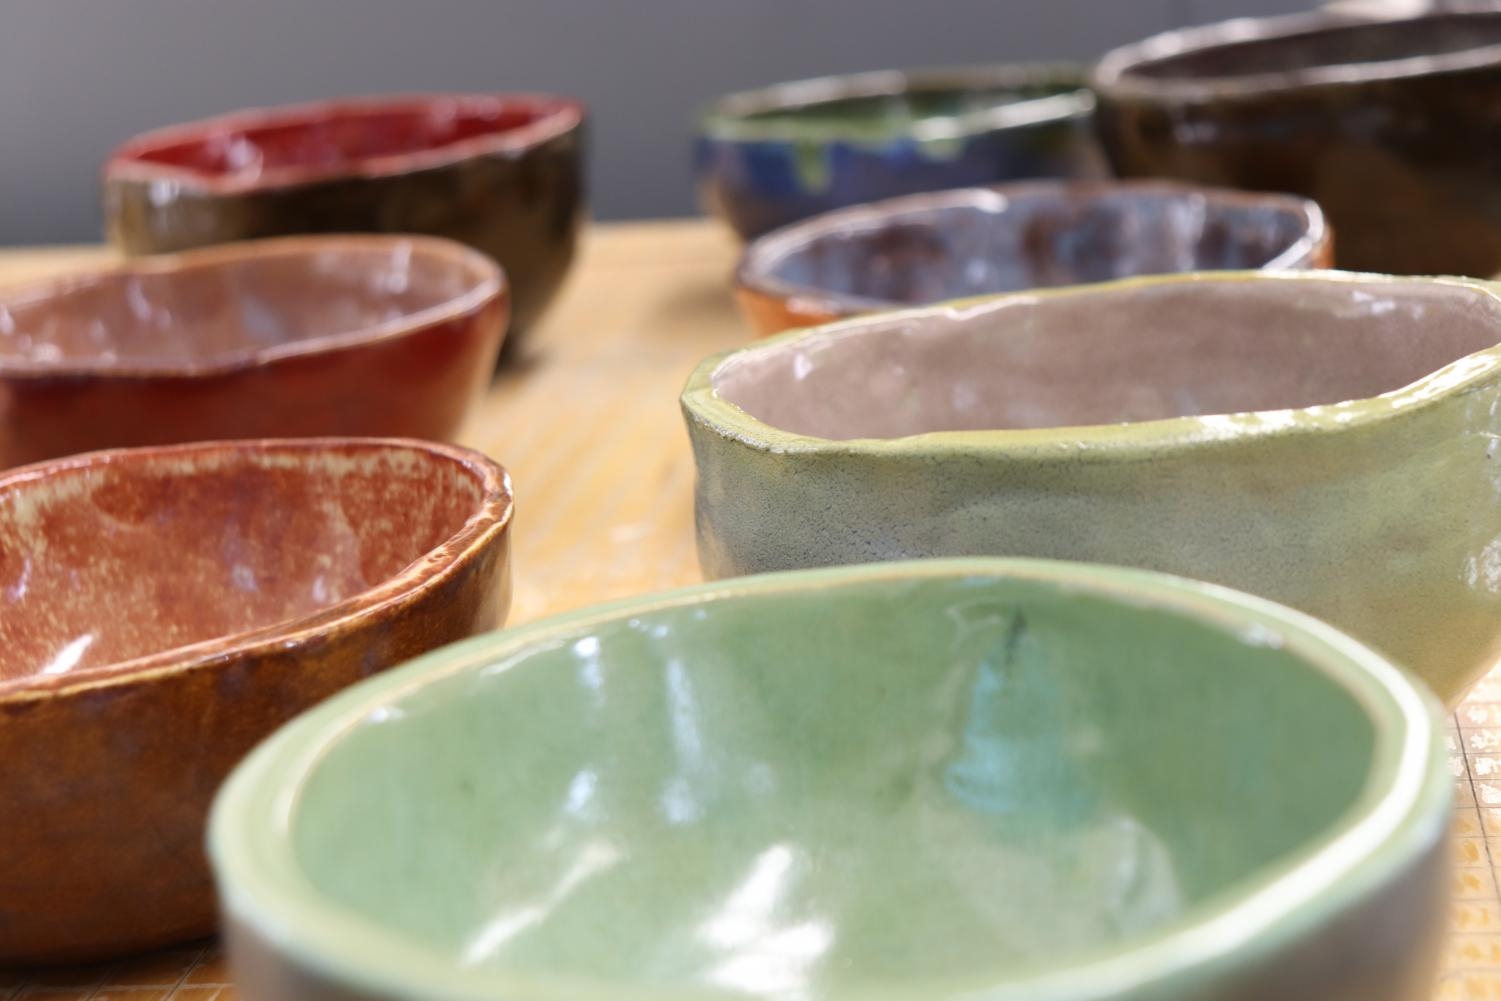 The Art Club made around ten bowls for the Connection's Empty Bowls Dinner.